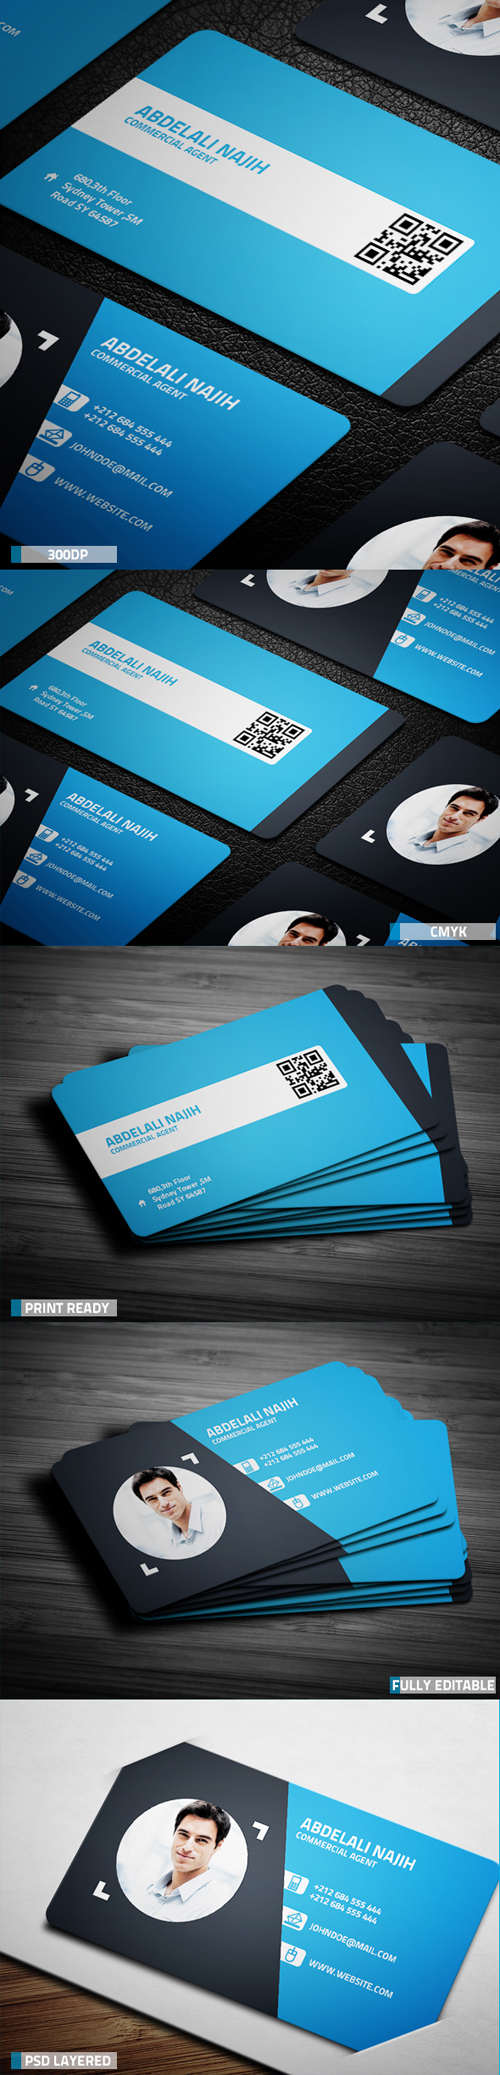 business cards template design - 9